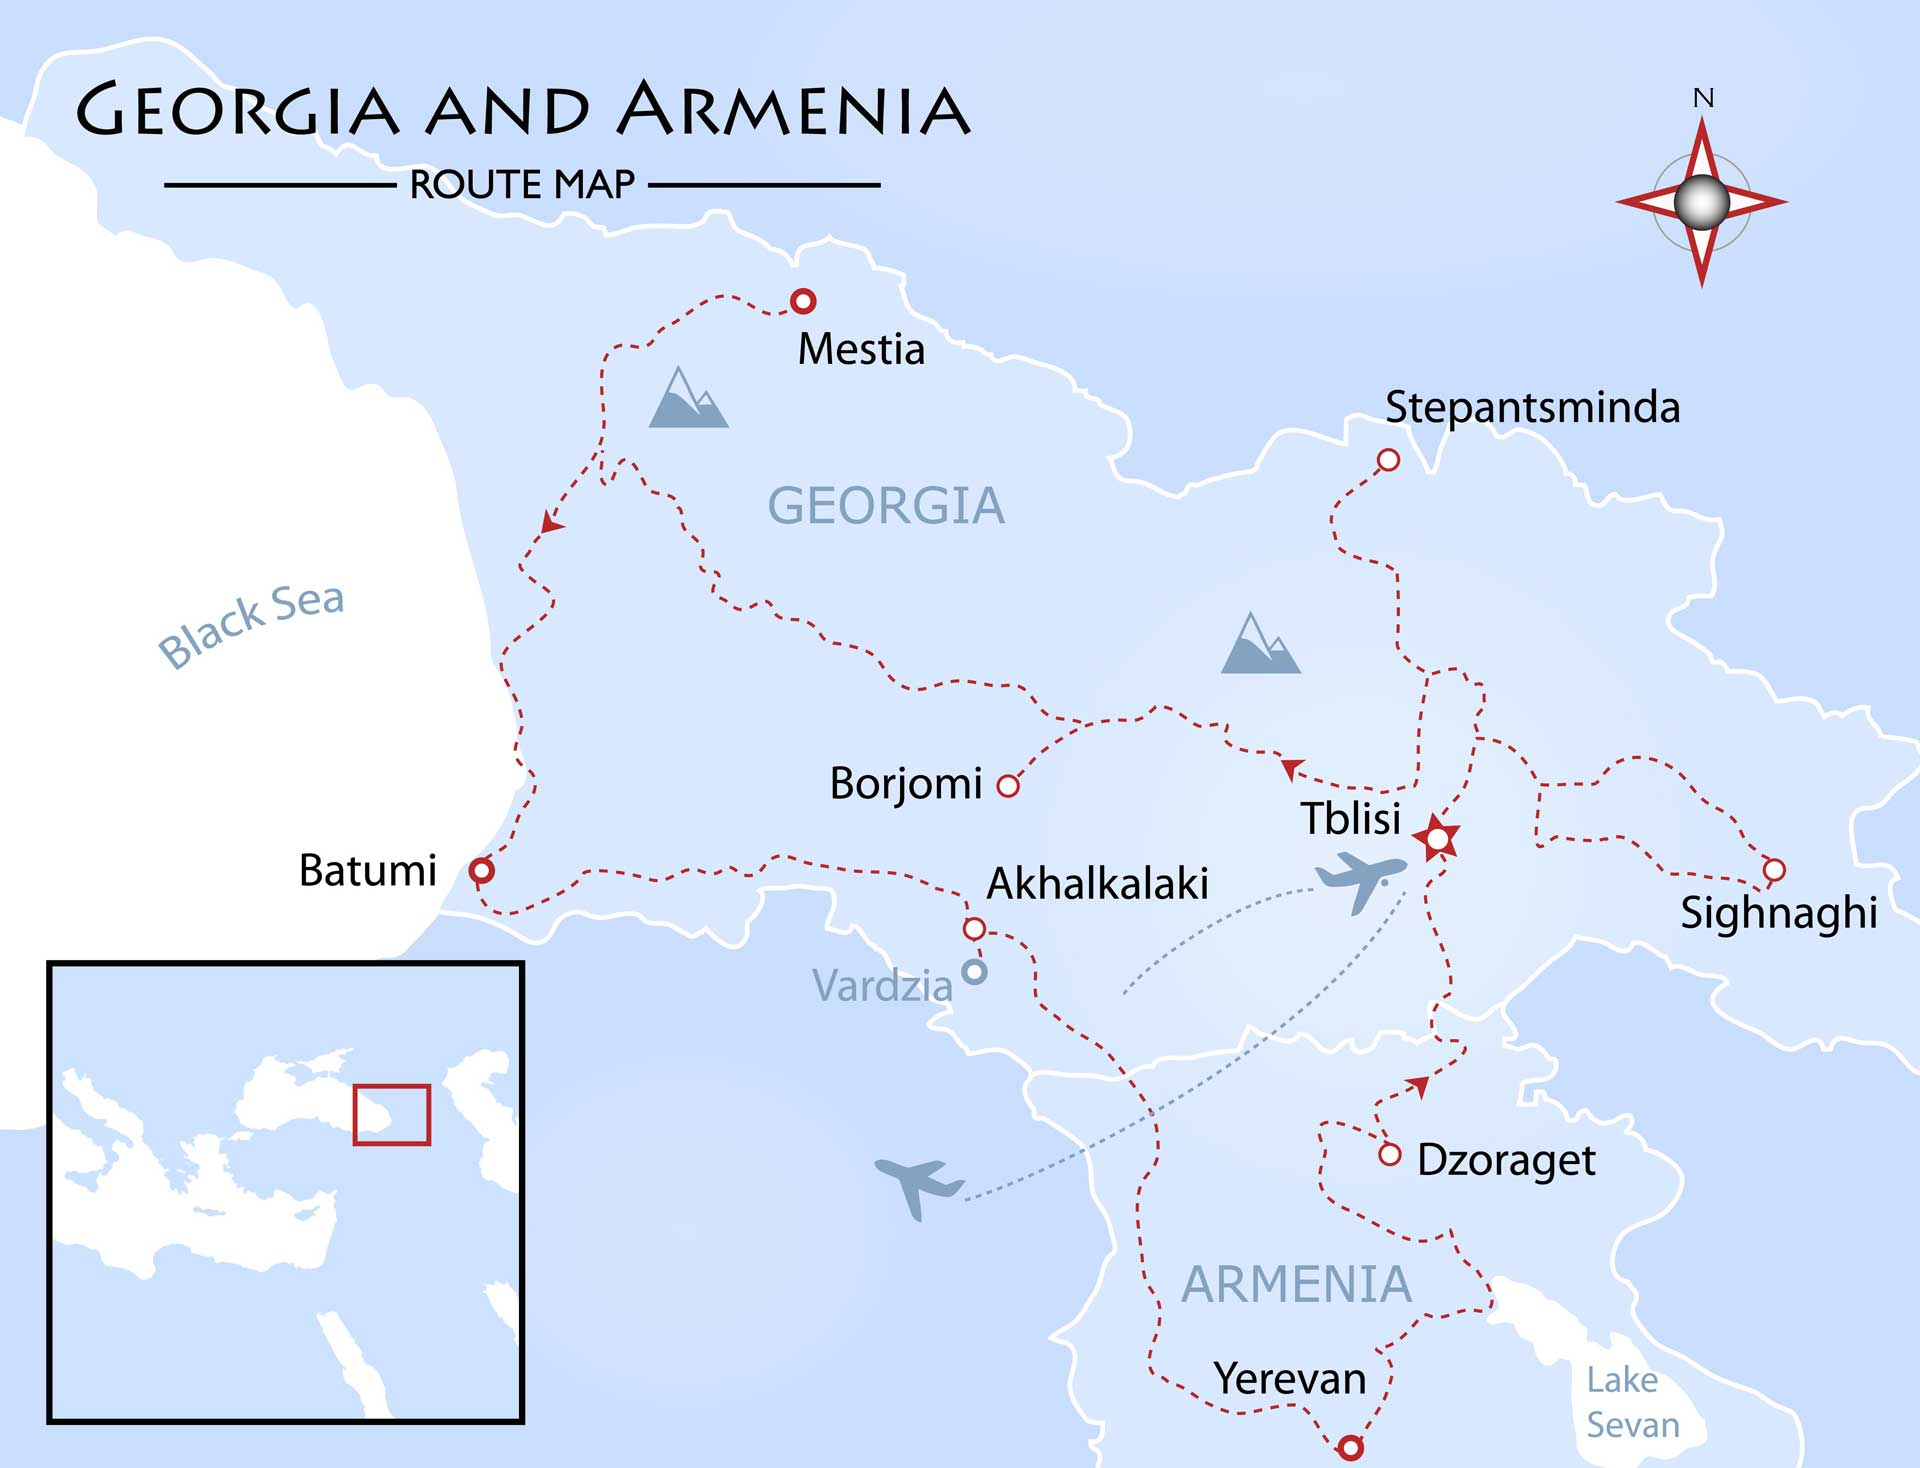 Georgia and Armenia Map